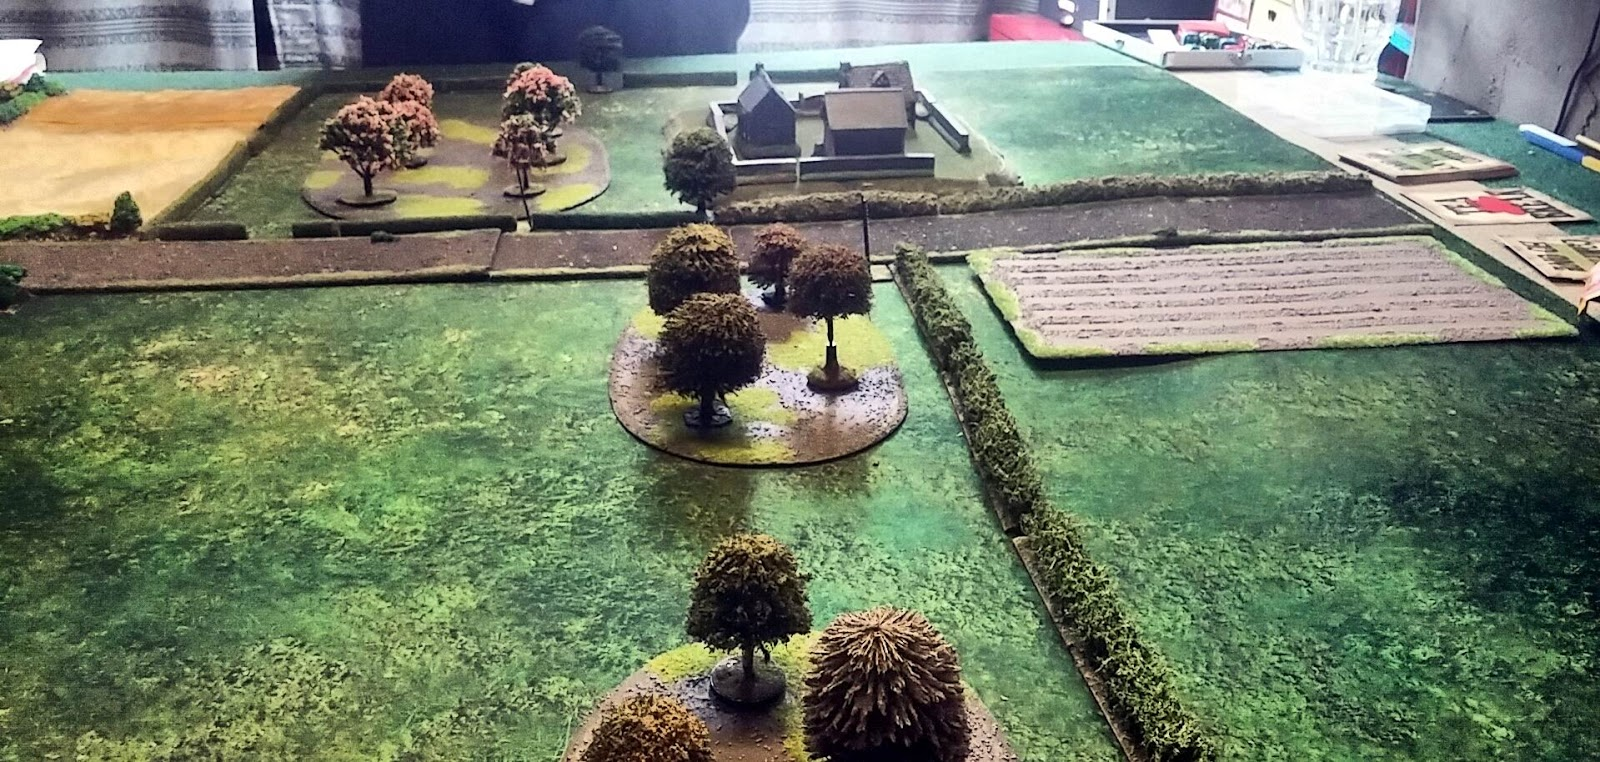 The German set up area with lots of terrain 'Blinds' areas